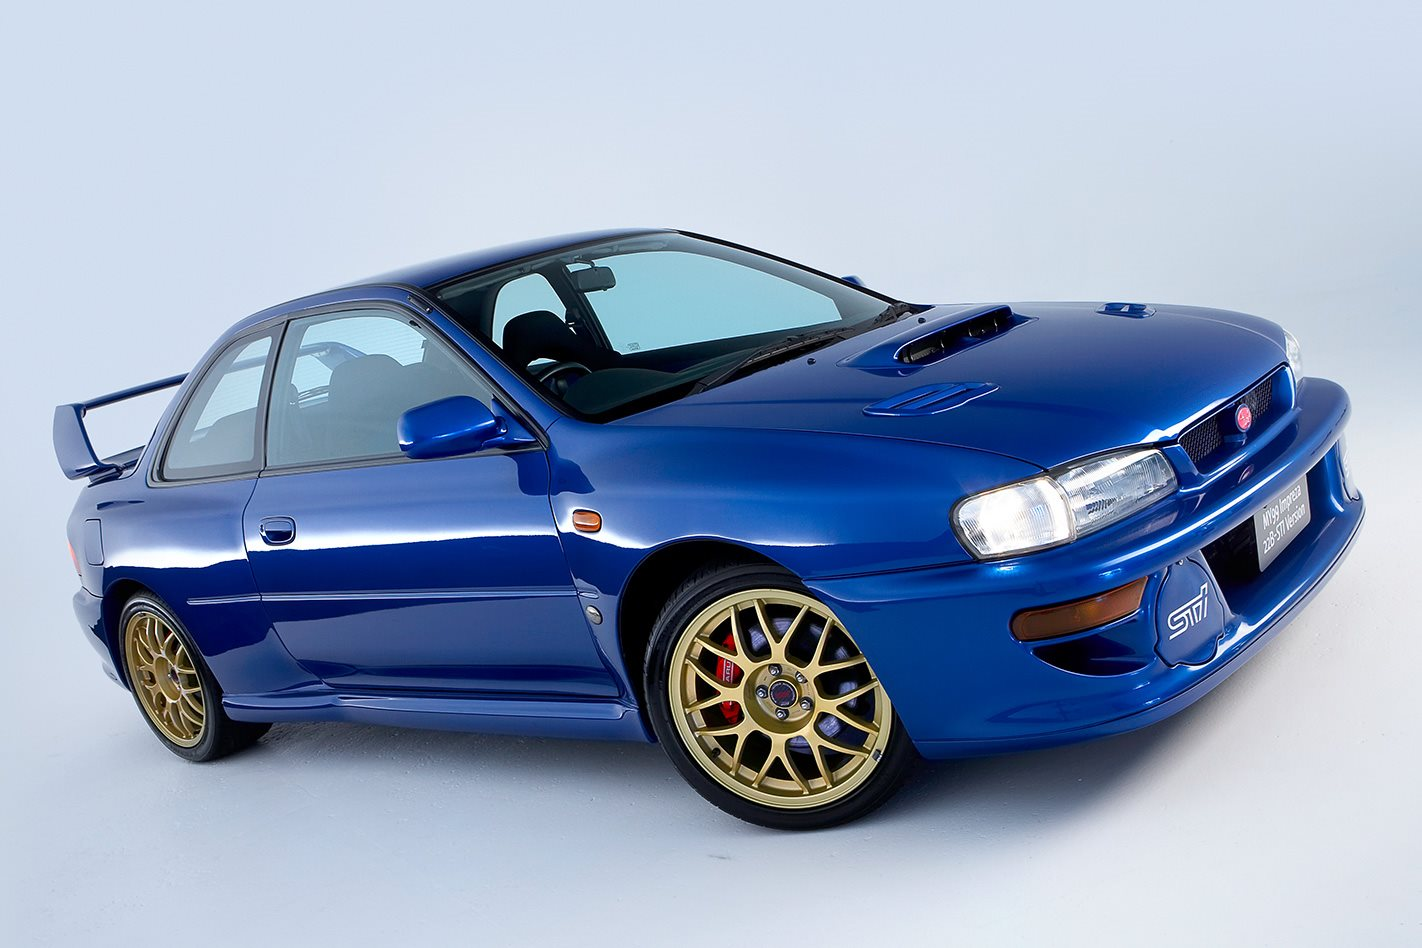 1999 Subaru 22B STi Greatest Impreza Ever